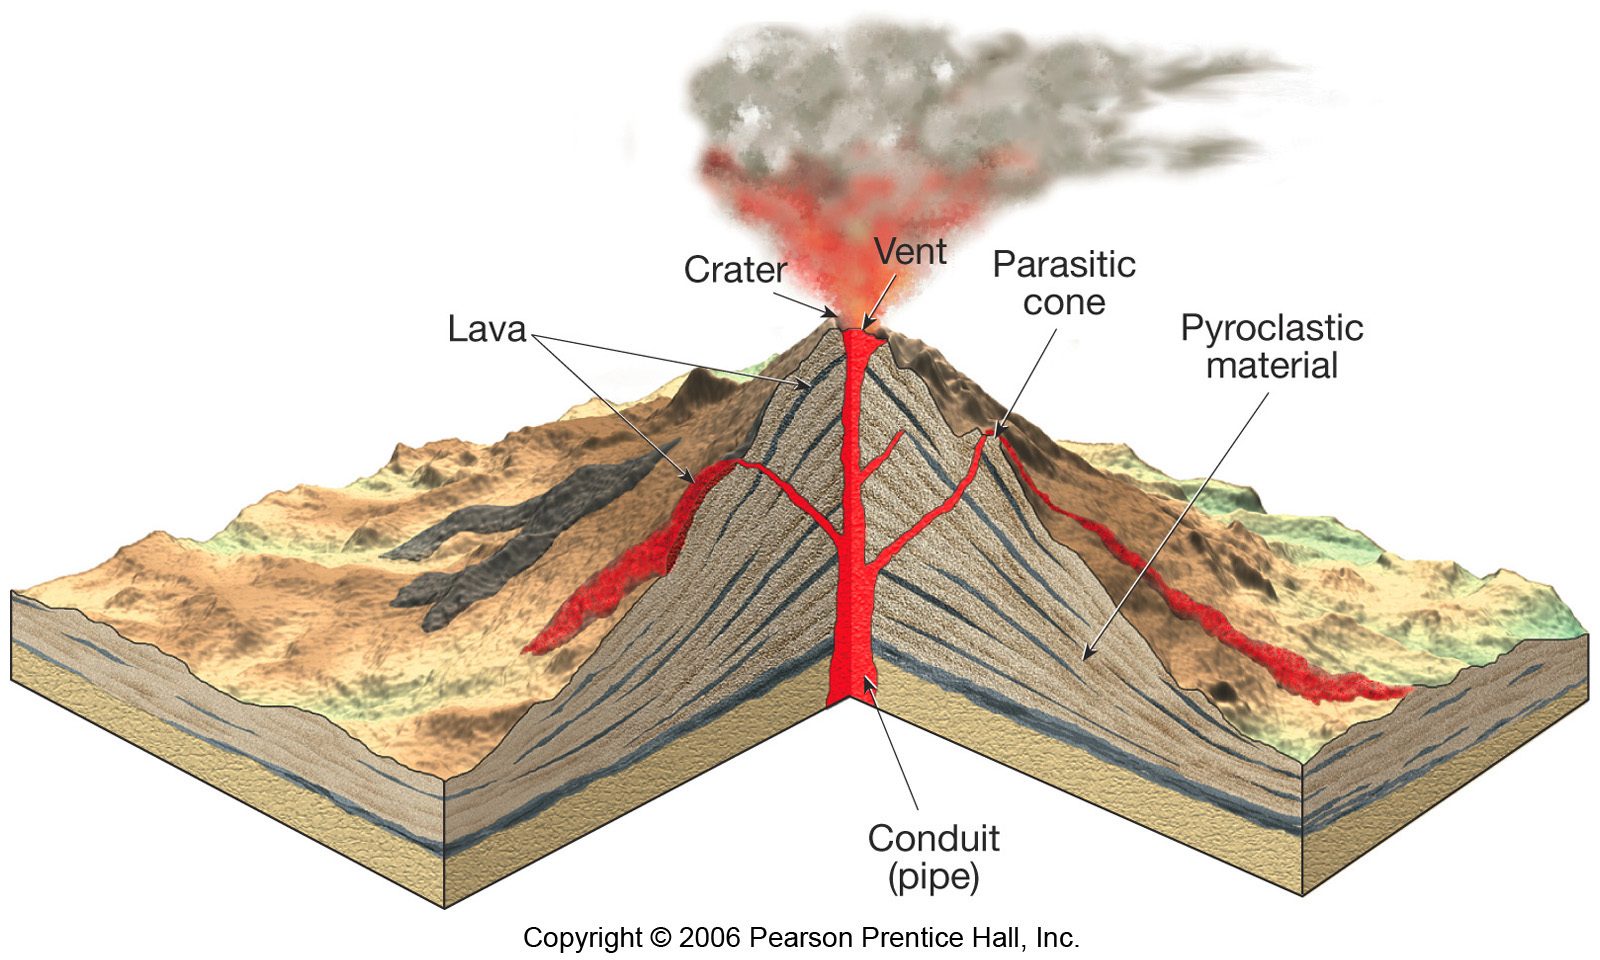 Pin Parts Of A Composite Volcano Diagram on Pinterest